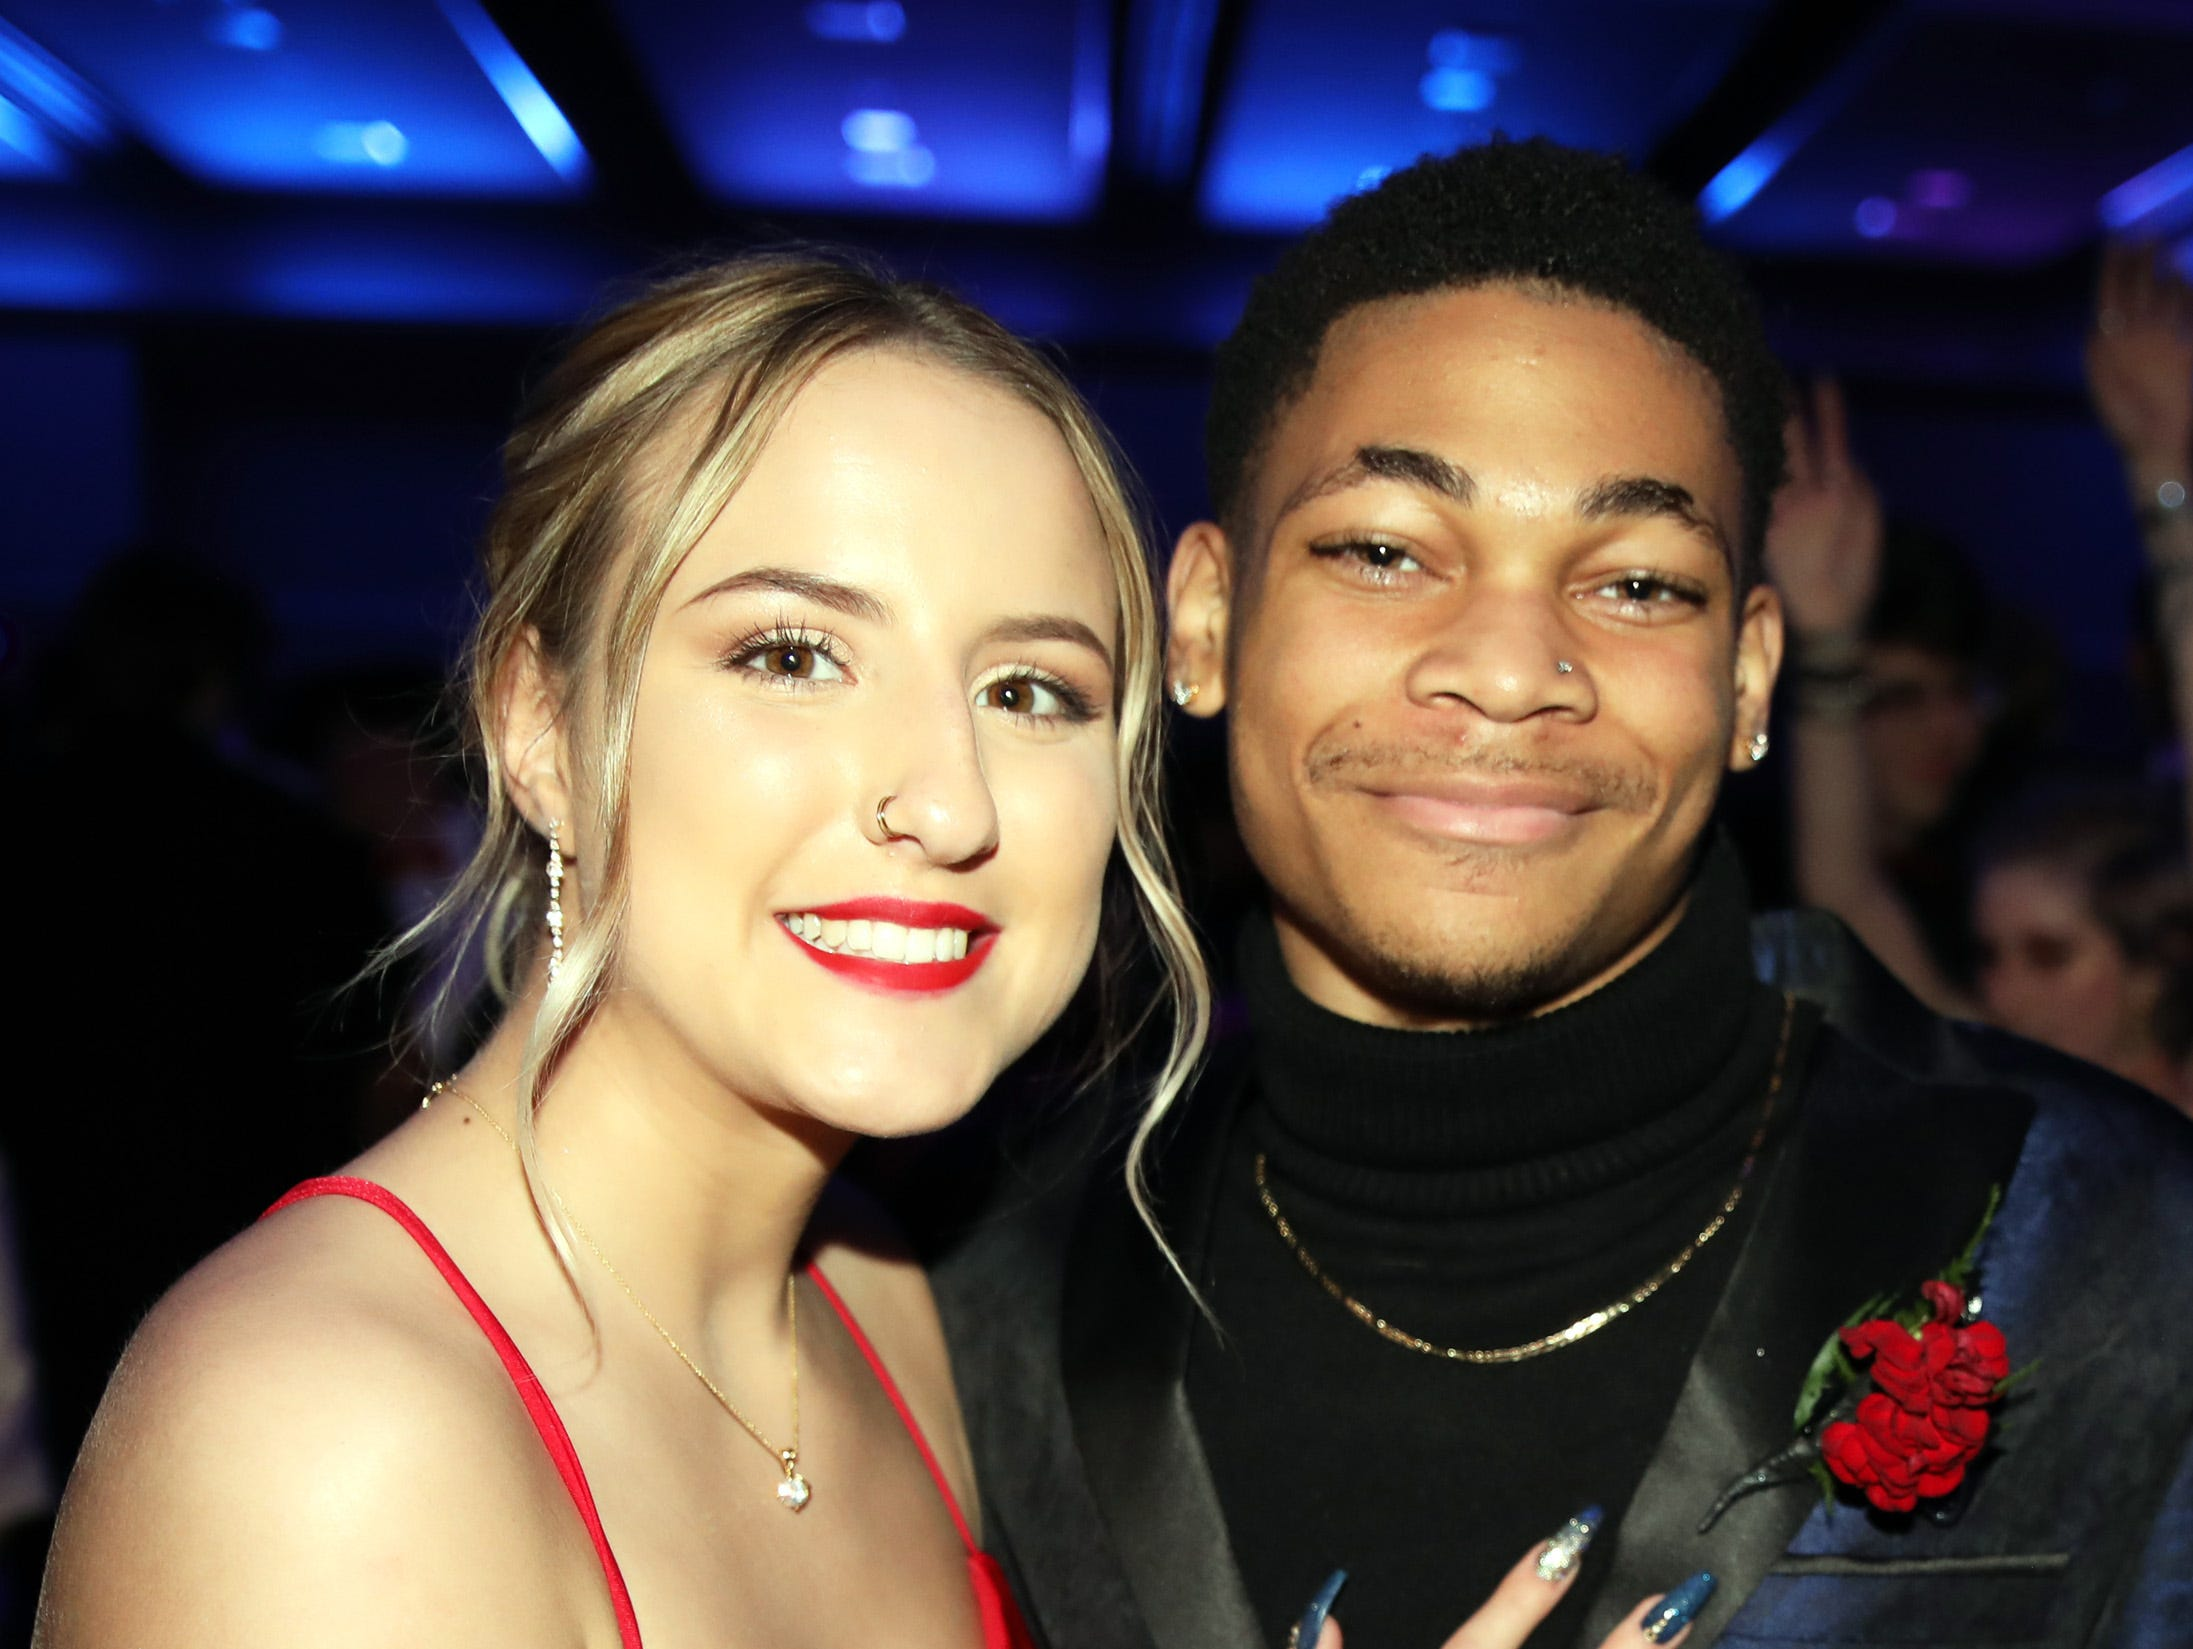 Seniors Victoria Sheehey and Kahlil Hicks-Jumper attend the Waukee High School Prom at the Ron Pearson Center in West Des Moines on Saturday, April 6, 2019.